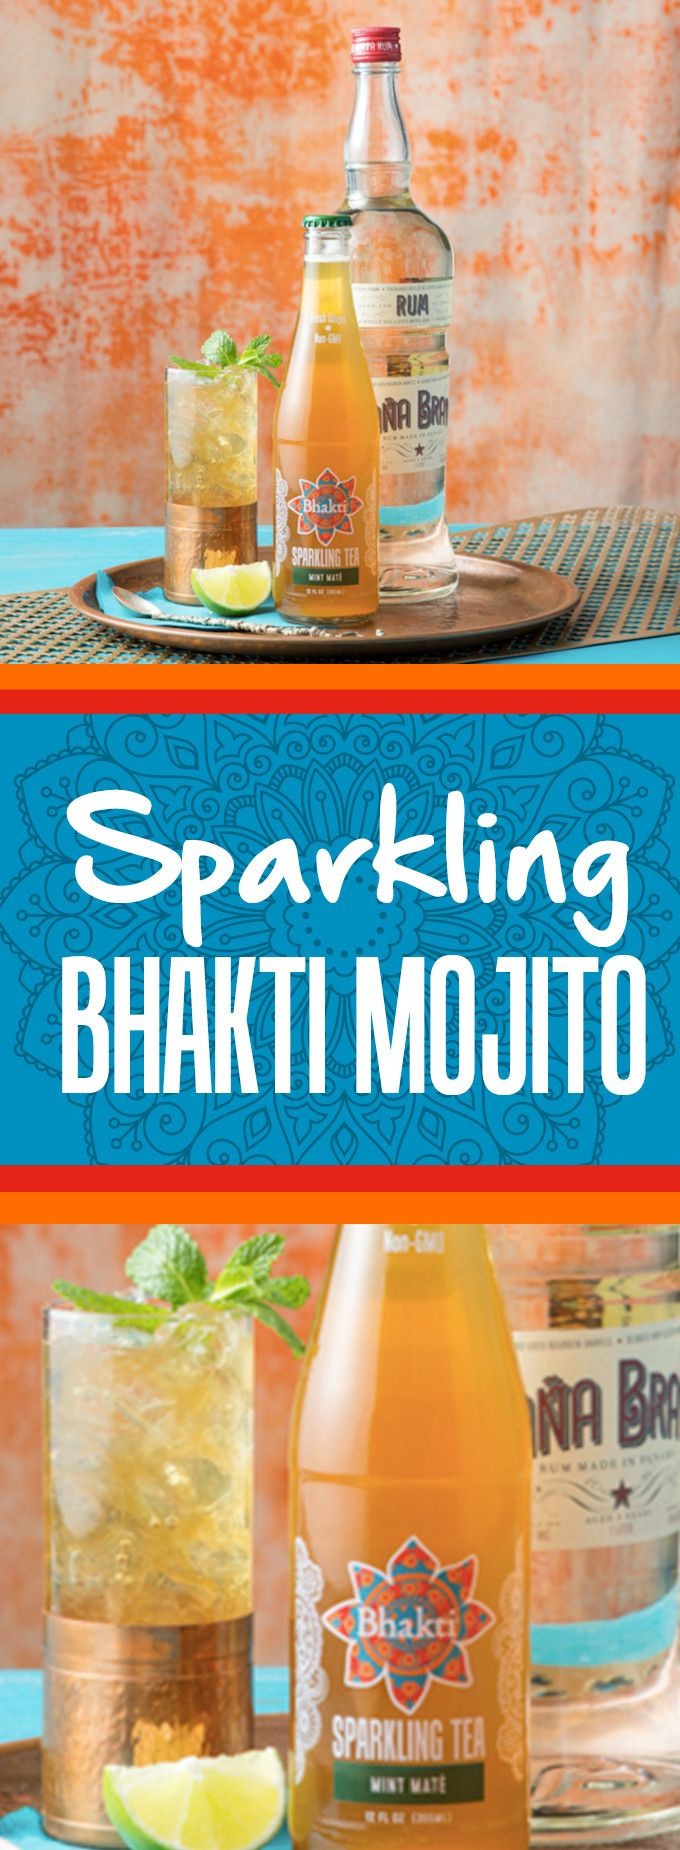 Chill out this Memorial Day with a Sparkling Bhakti Mojito made with our refreshing Mint Mate and a squeeze of sour lime spiked with rum!